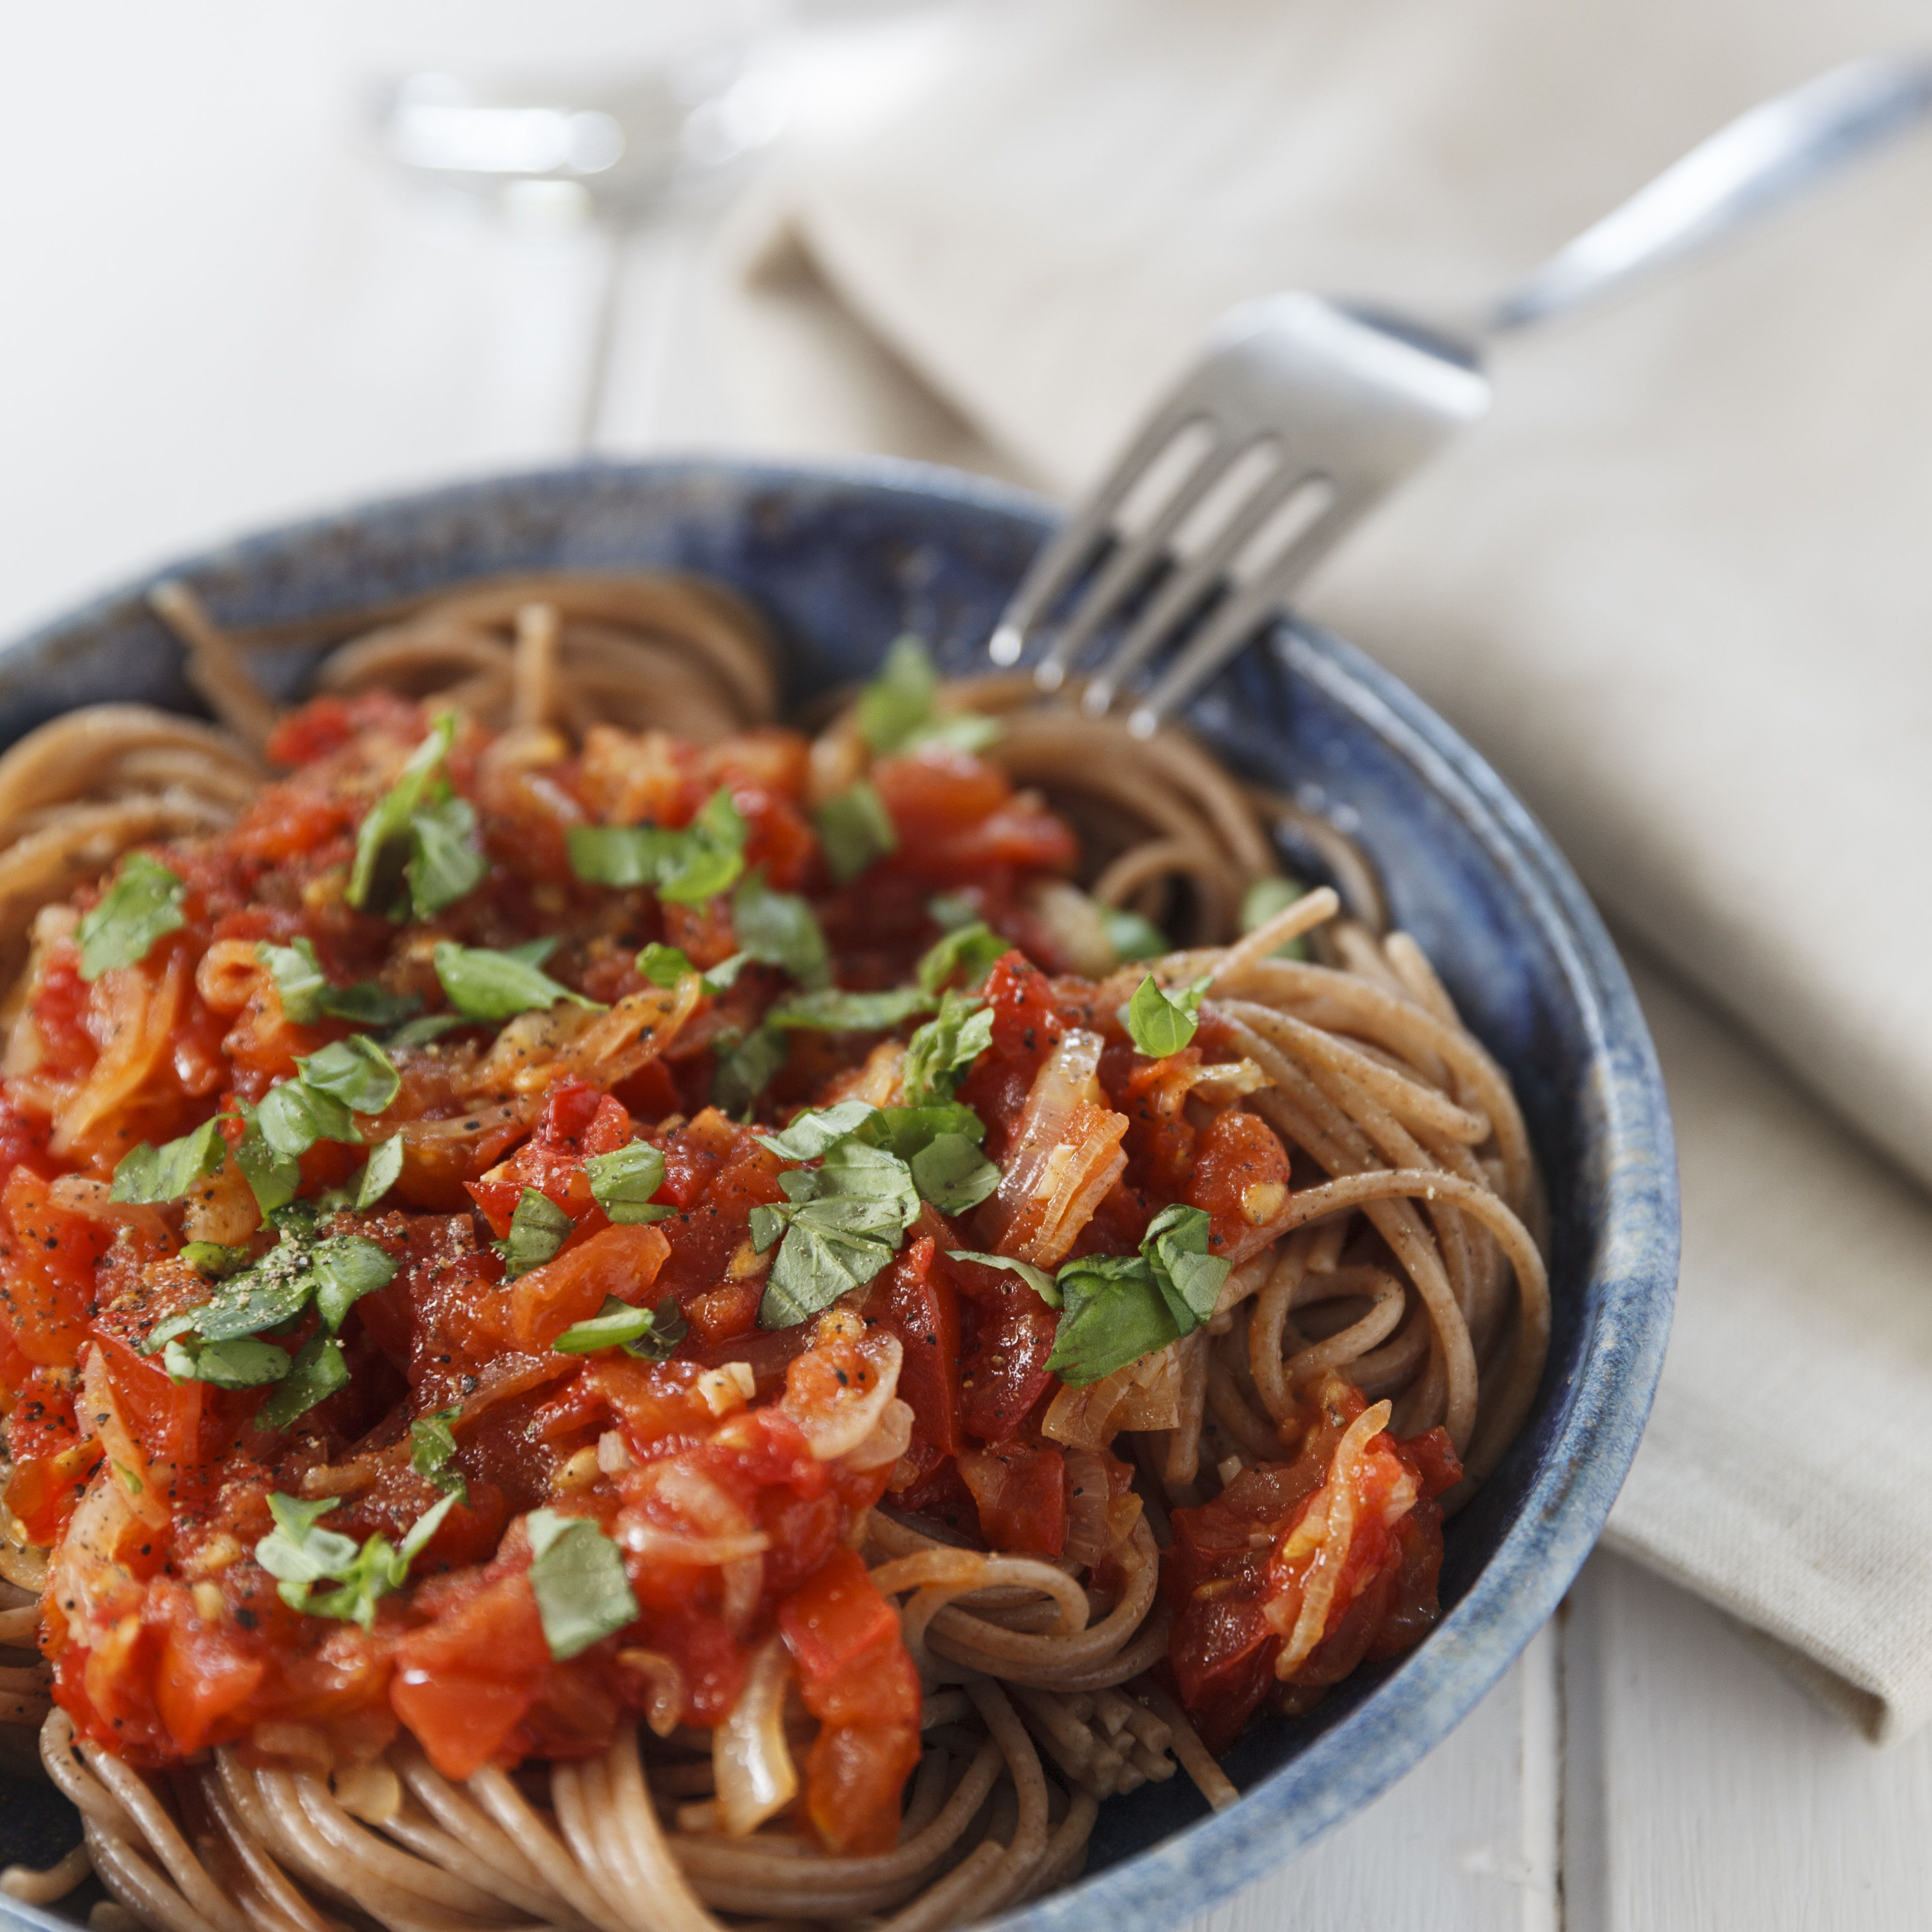 Bowl of spelt pasta with tomatoes and basil, close-up